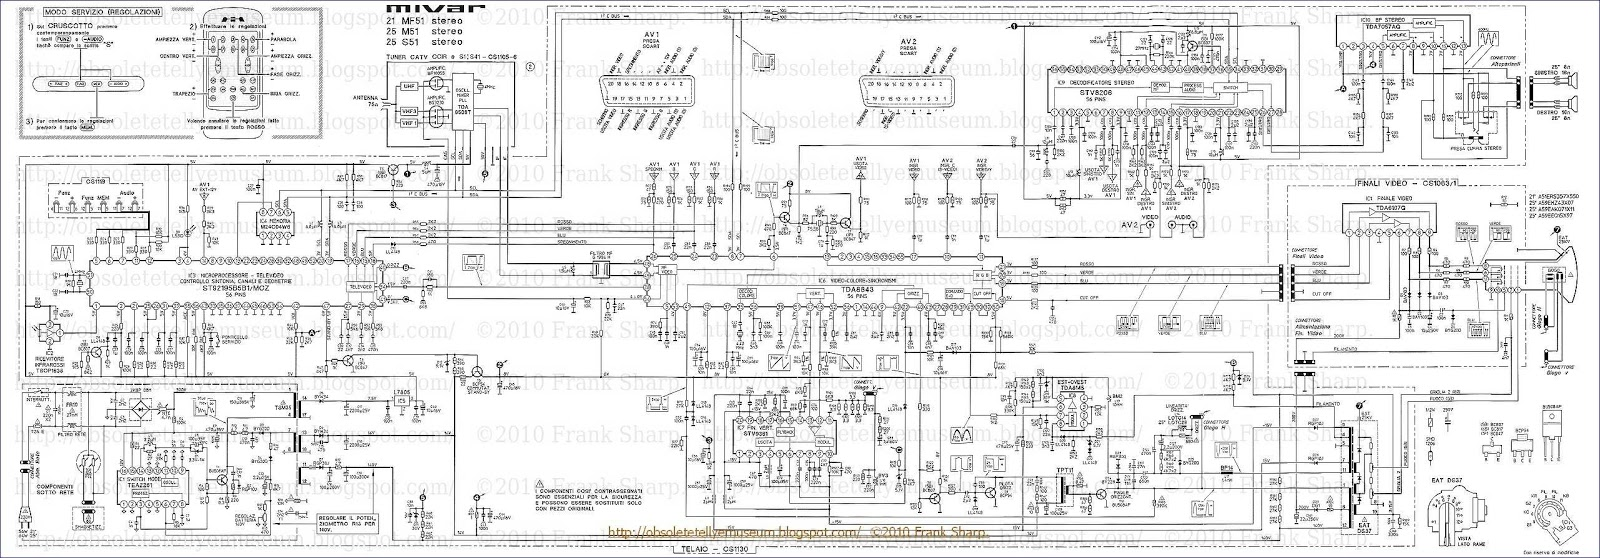 AIR PRESSOR 240 VOLT WIRING DIAGRAM